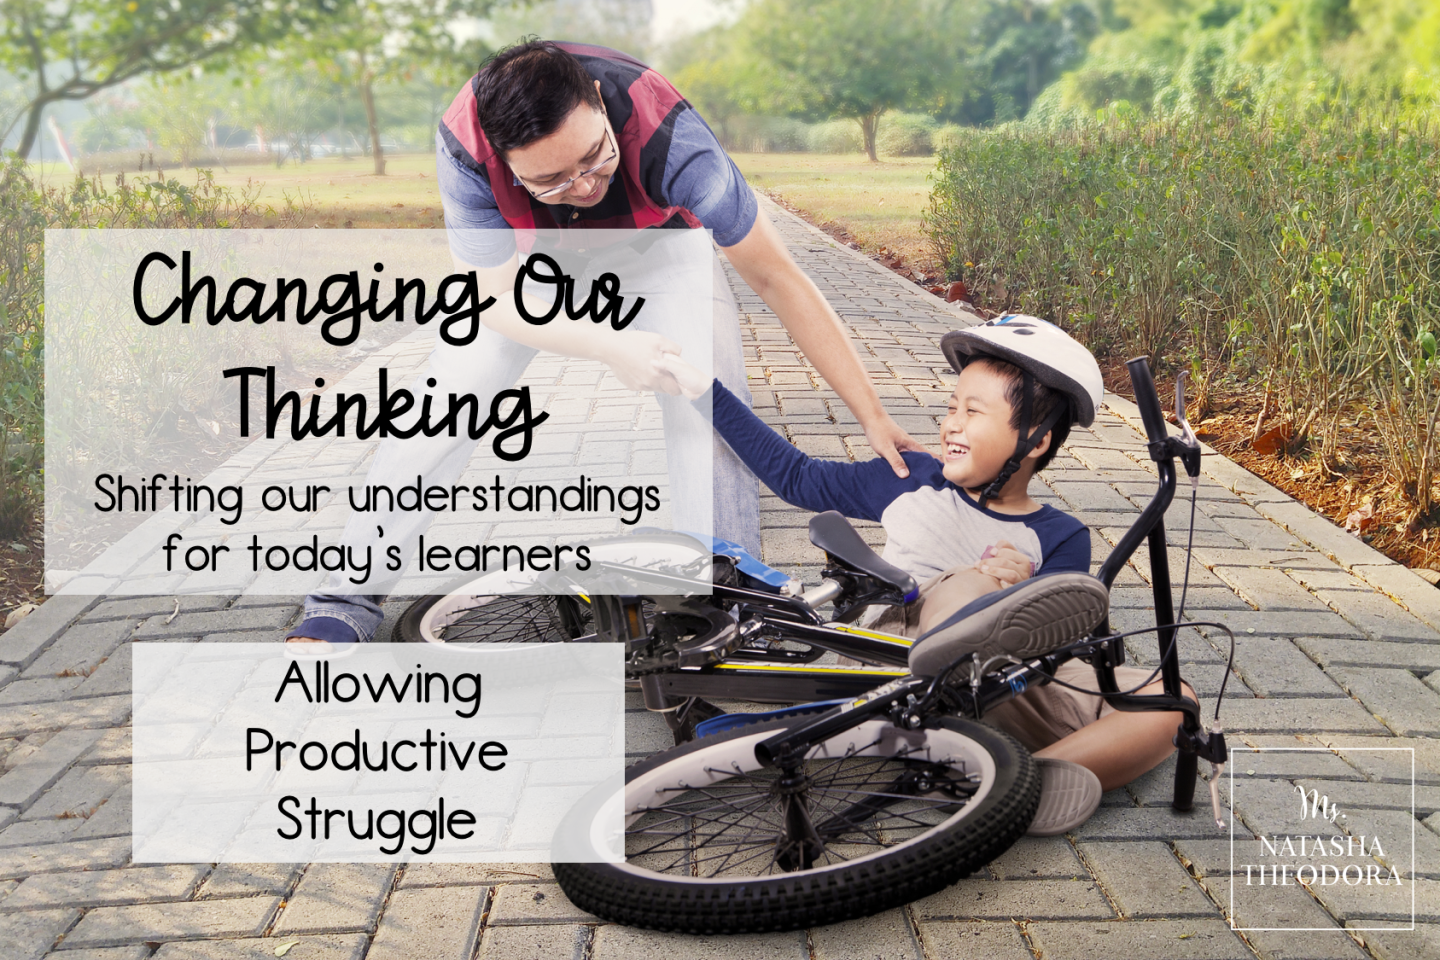 Changing Our Thinking: Allowing Productive Struggle